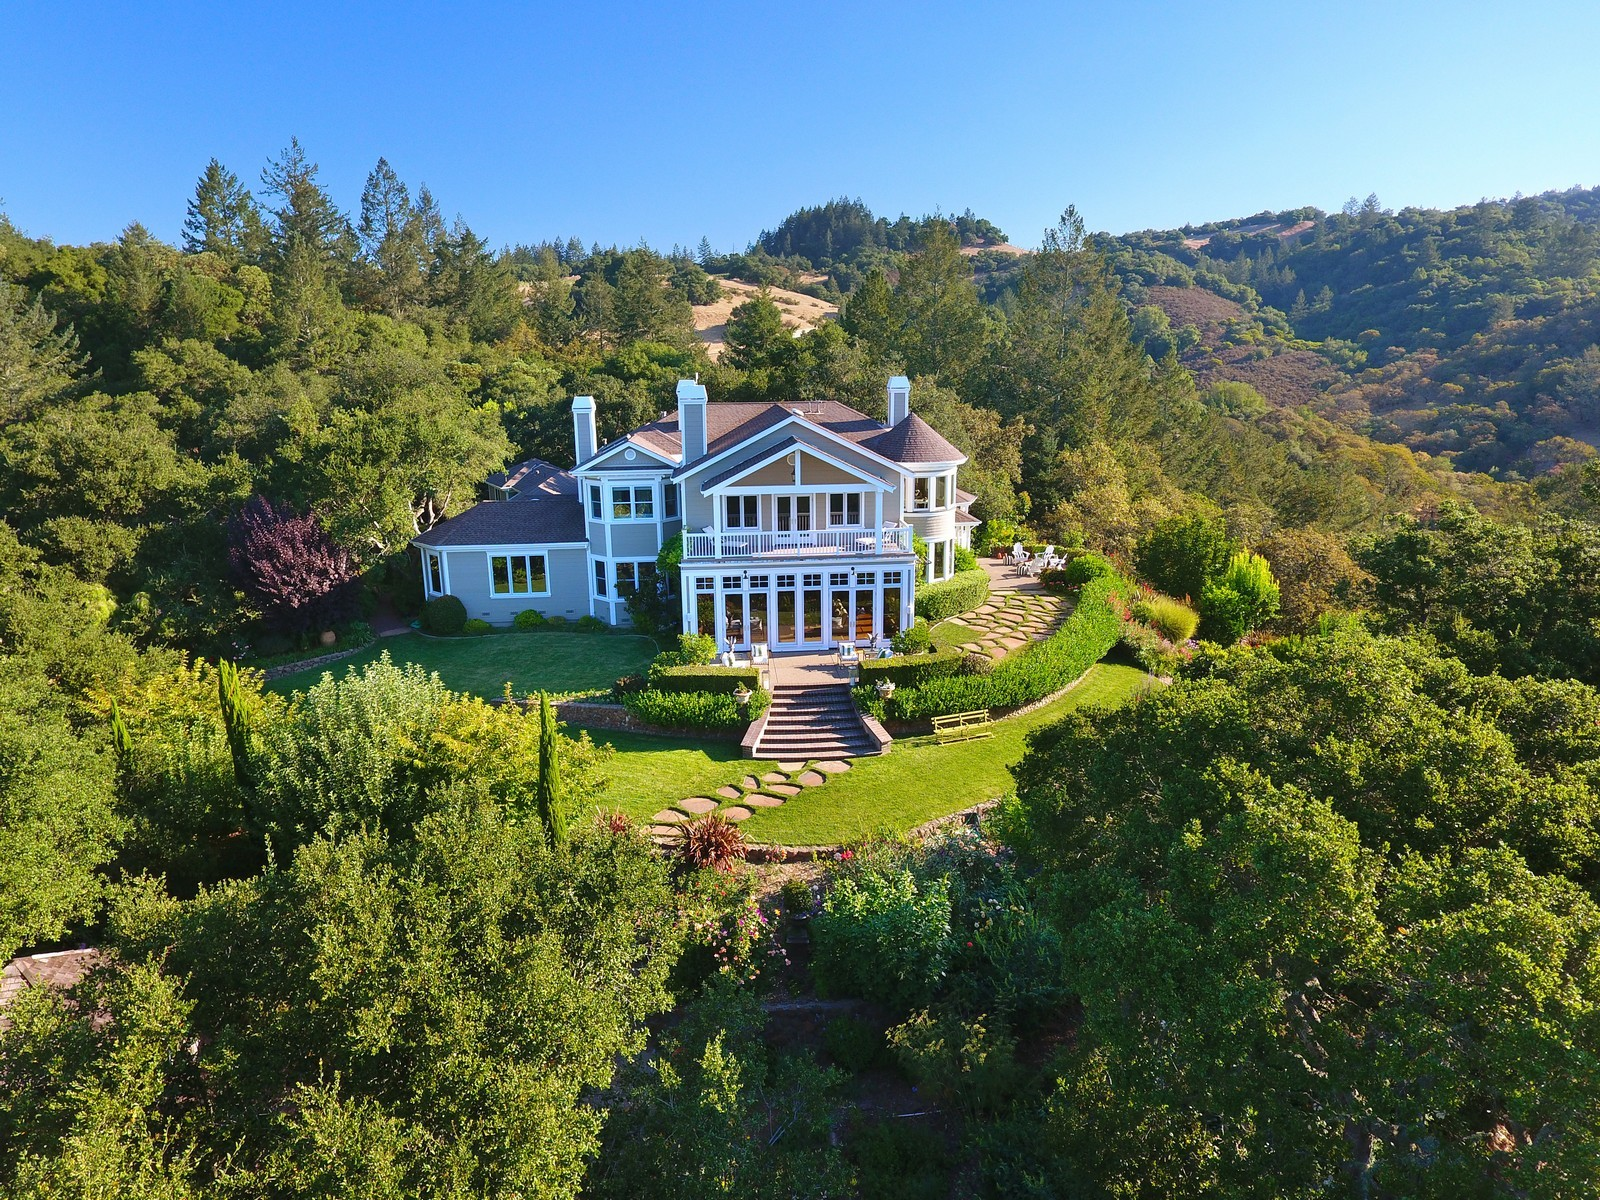 Casa Unifamiliar por un Venta en Redwood Hills Ranch Estate 1920 Redwood Hill Santa Rosa, California, 95404 Estados Unidos